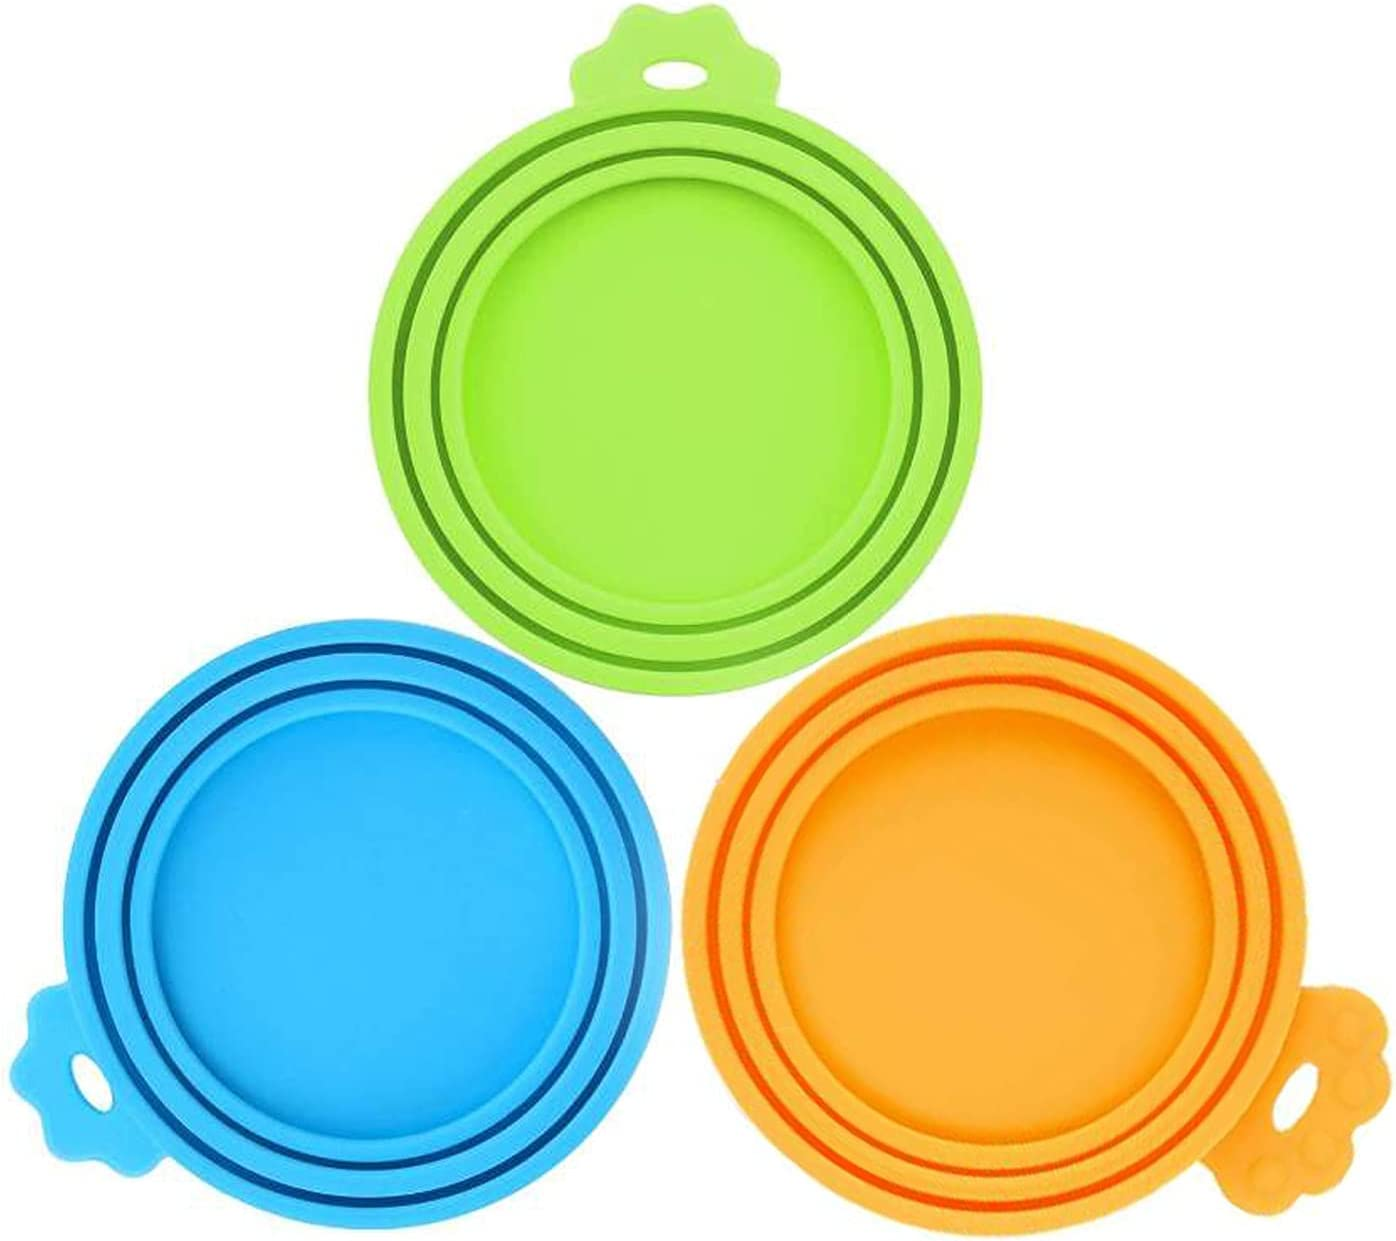 SHENQIDZ 3 Pack Pet Food Can Covers Lids Universal BPA Free & Dishwasher Safe/Silicone Dog&Cat Food Can Lid Covers